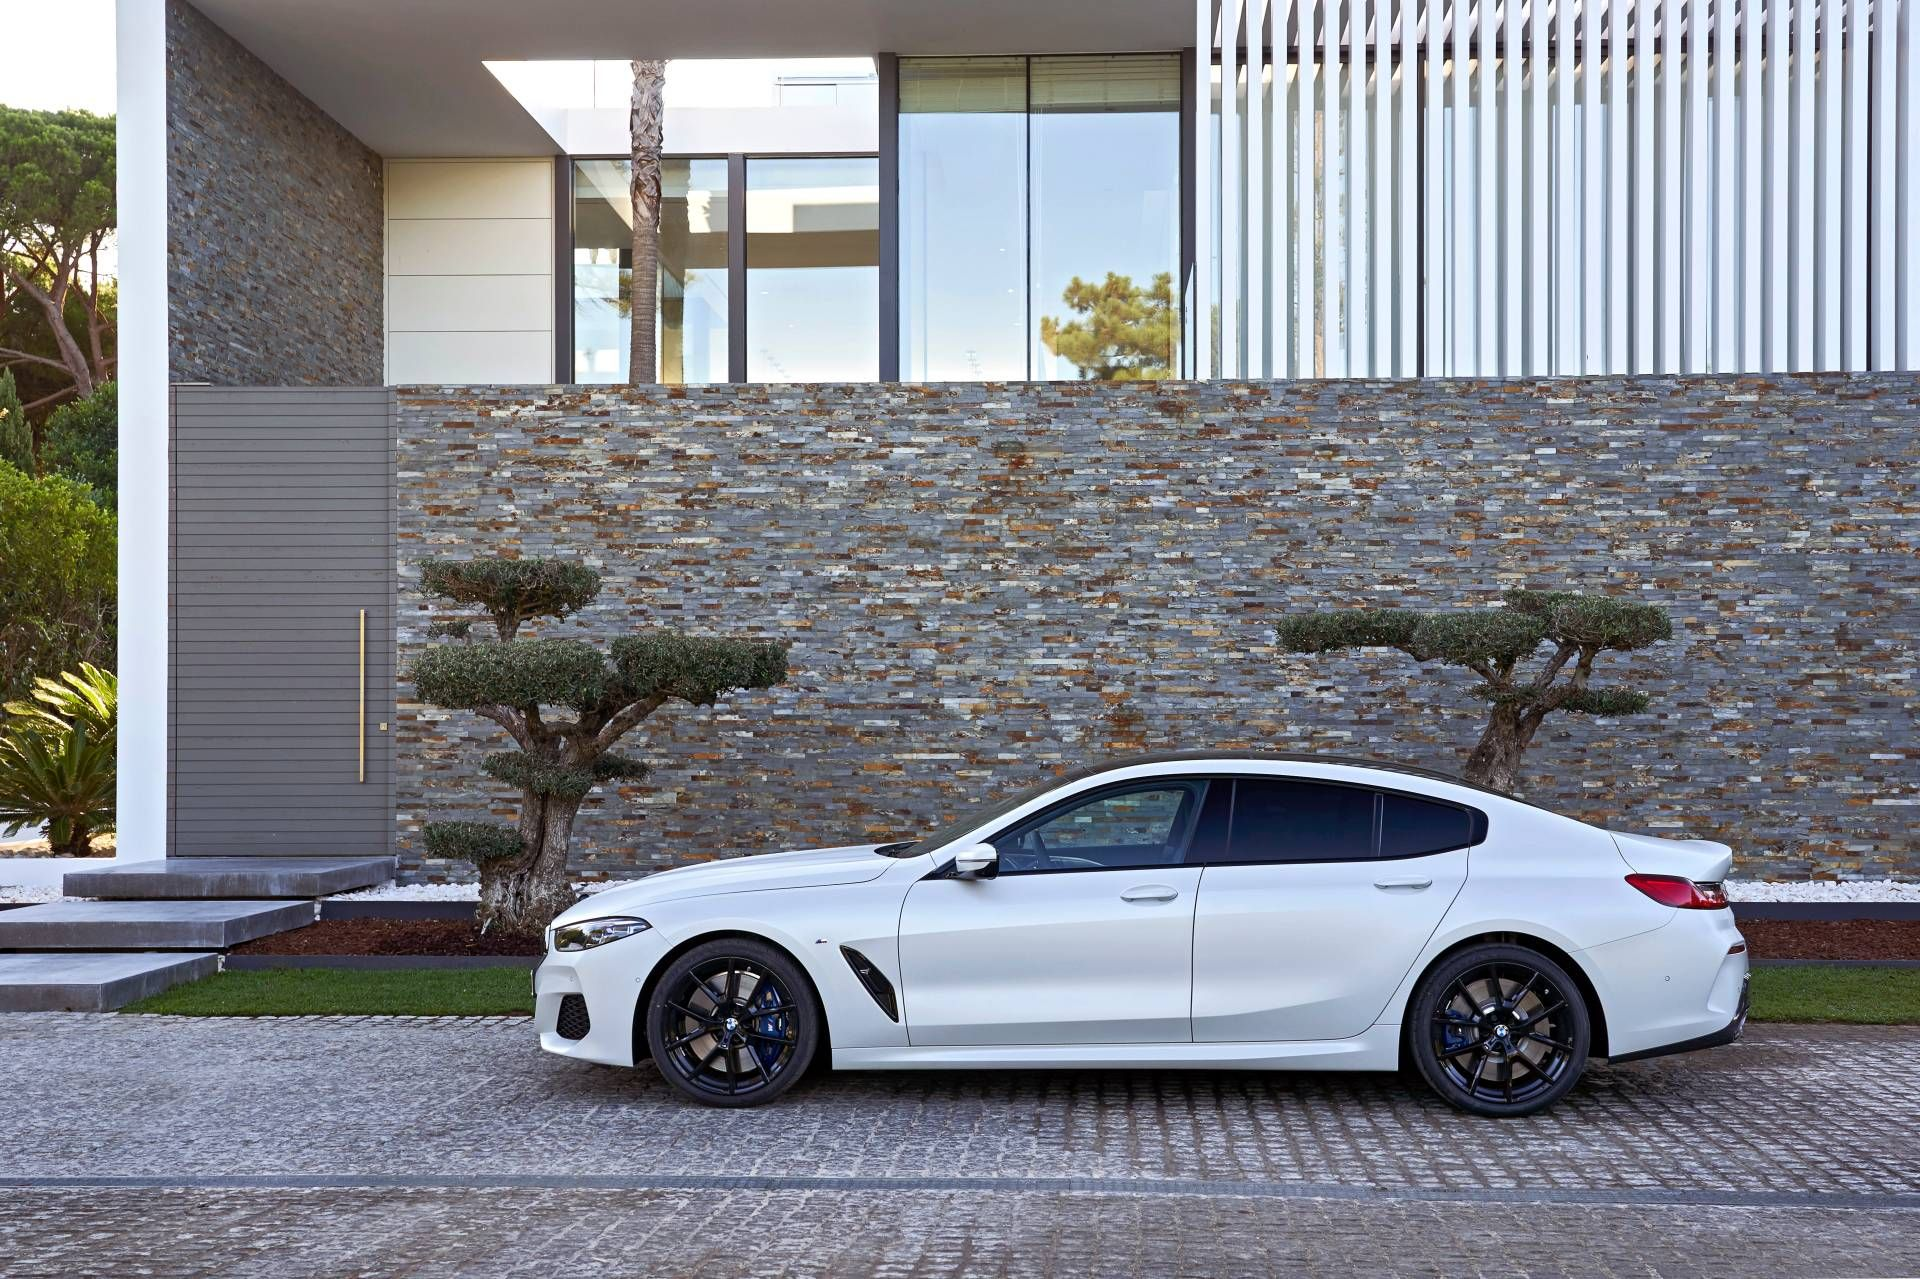 2020 Bmw 840i Gran Coupe Great White Shark Reviewed And Photographed In Detail Carscoops Bmw 840i Bmw 2020 Bmw